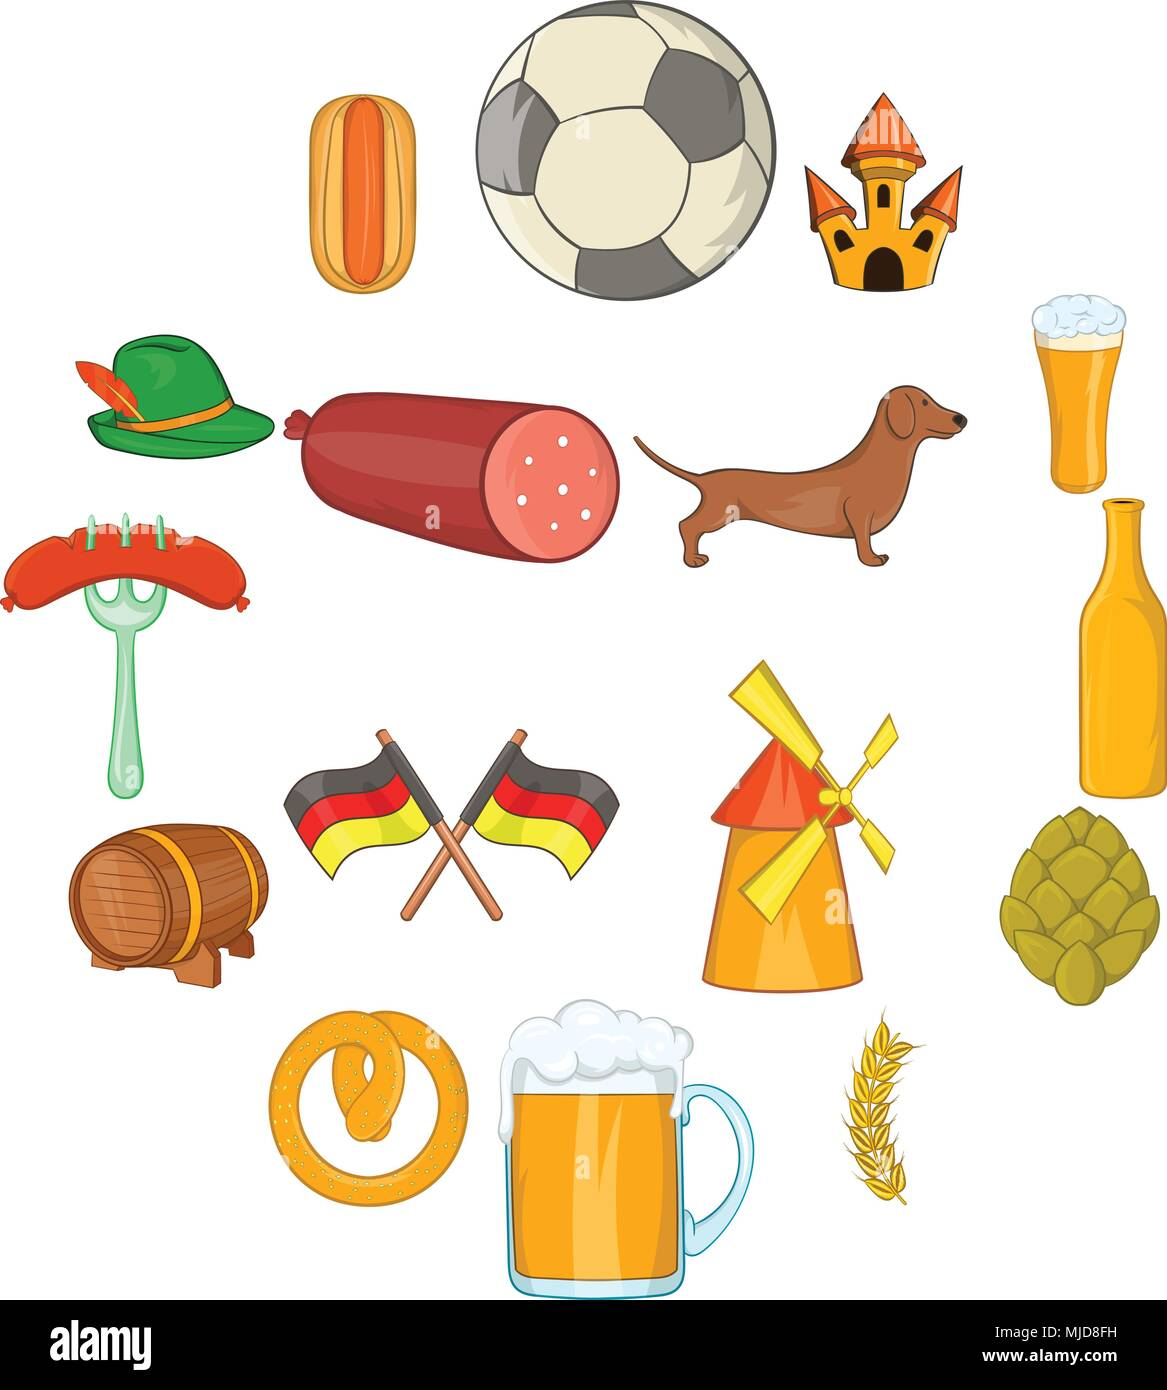 Germany icons set, cartoon style - Stock Image